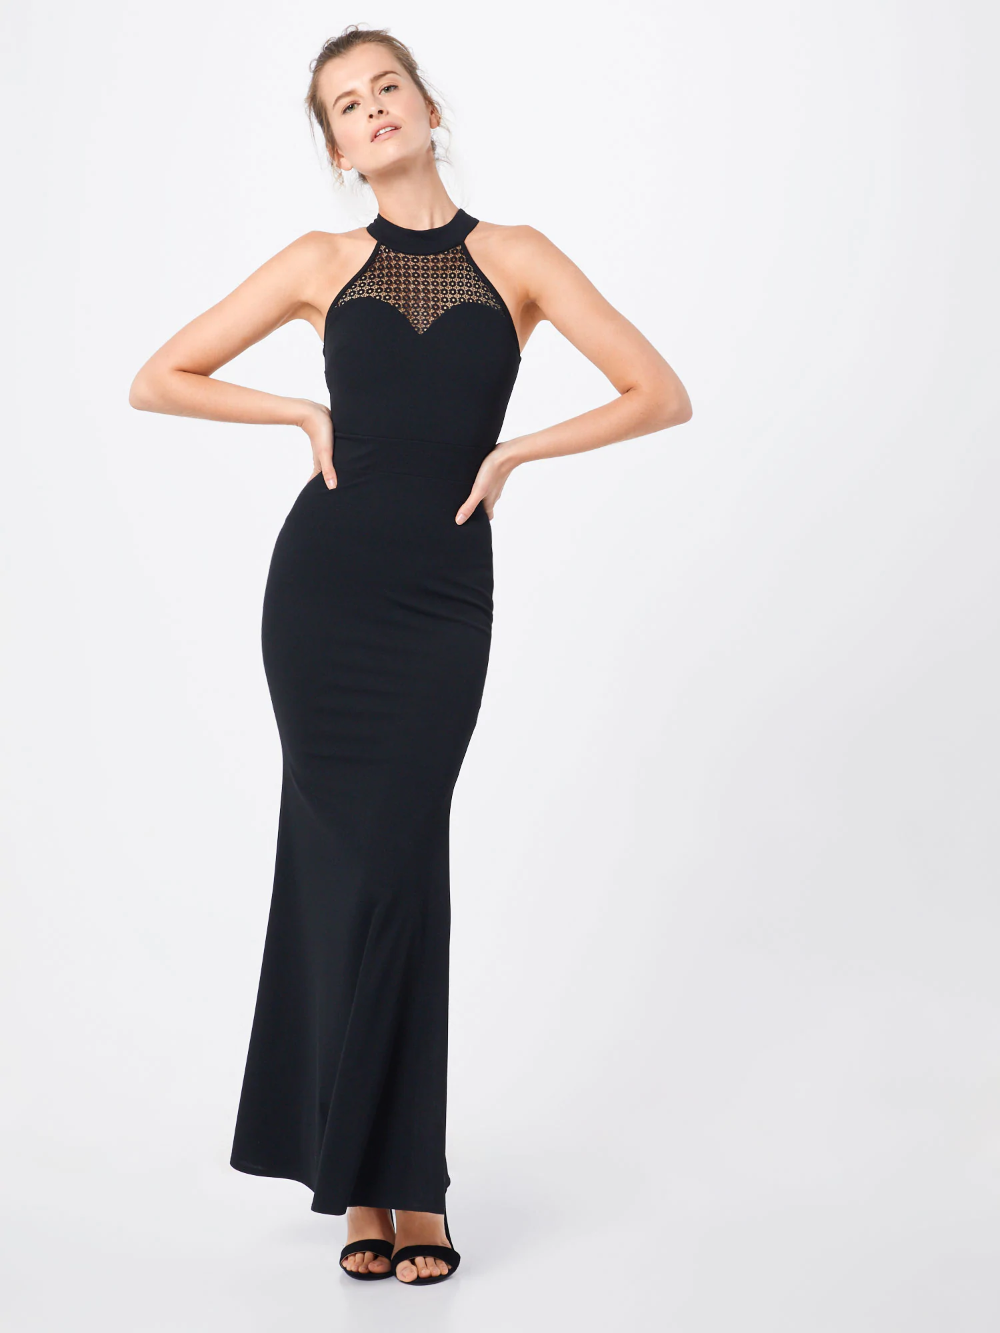 wal g. kleid 'wg 8517' in schwarz | about you in 2020 | wal